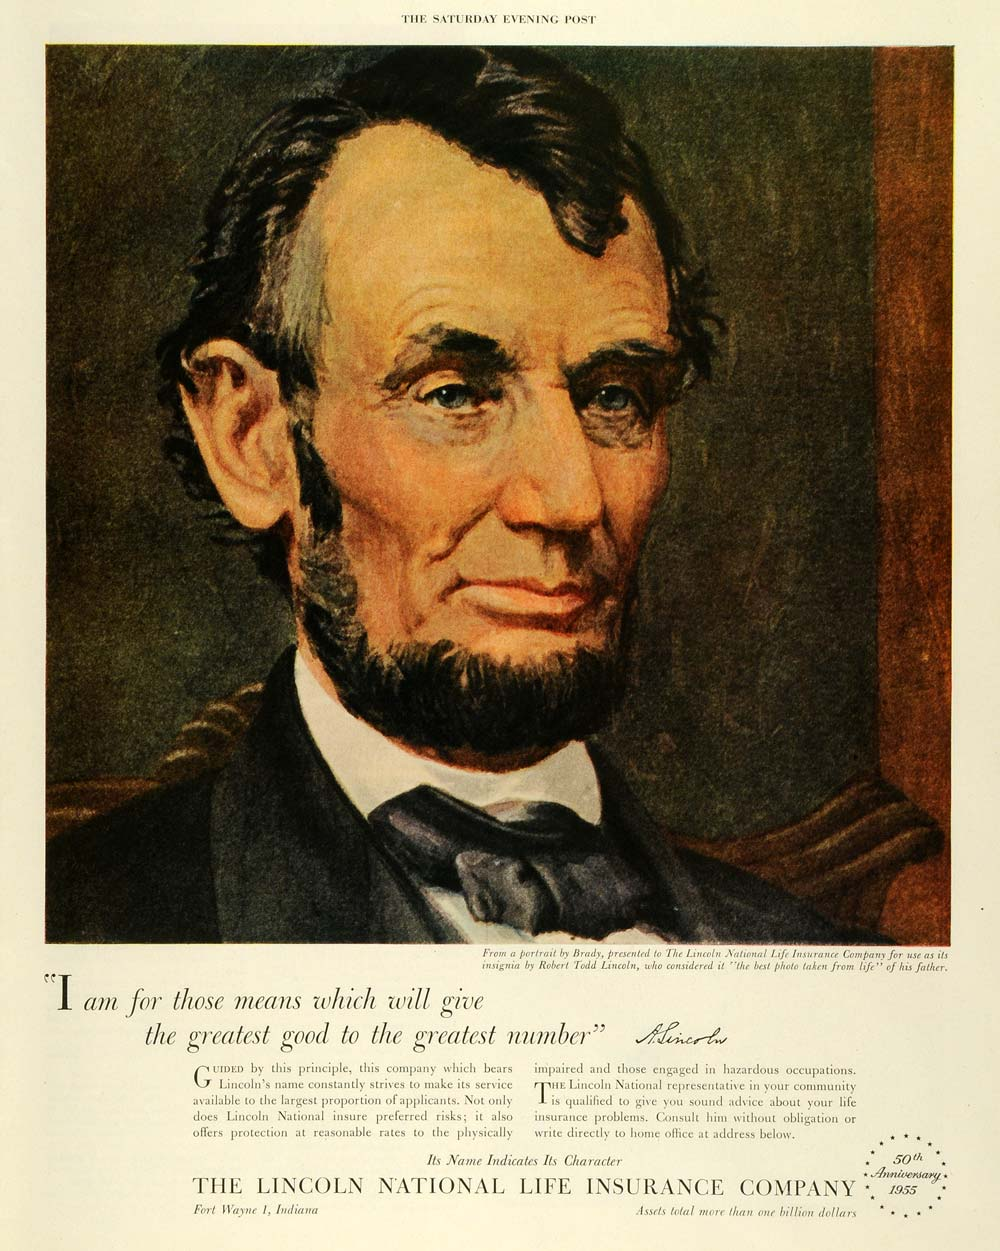 lincoln ph changed and co between has jefferson ins or american a into life its standard insurance national amicable merged company page